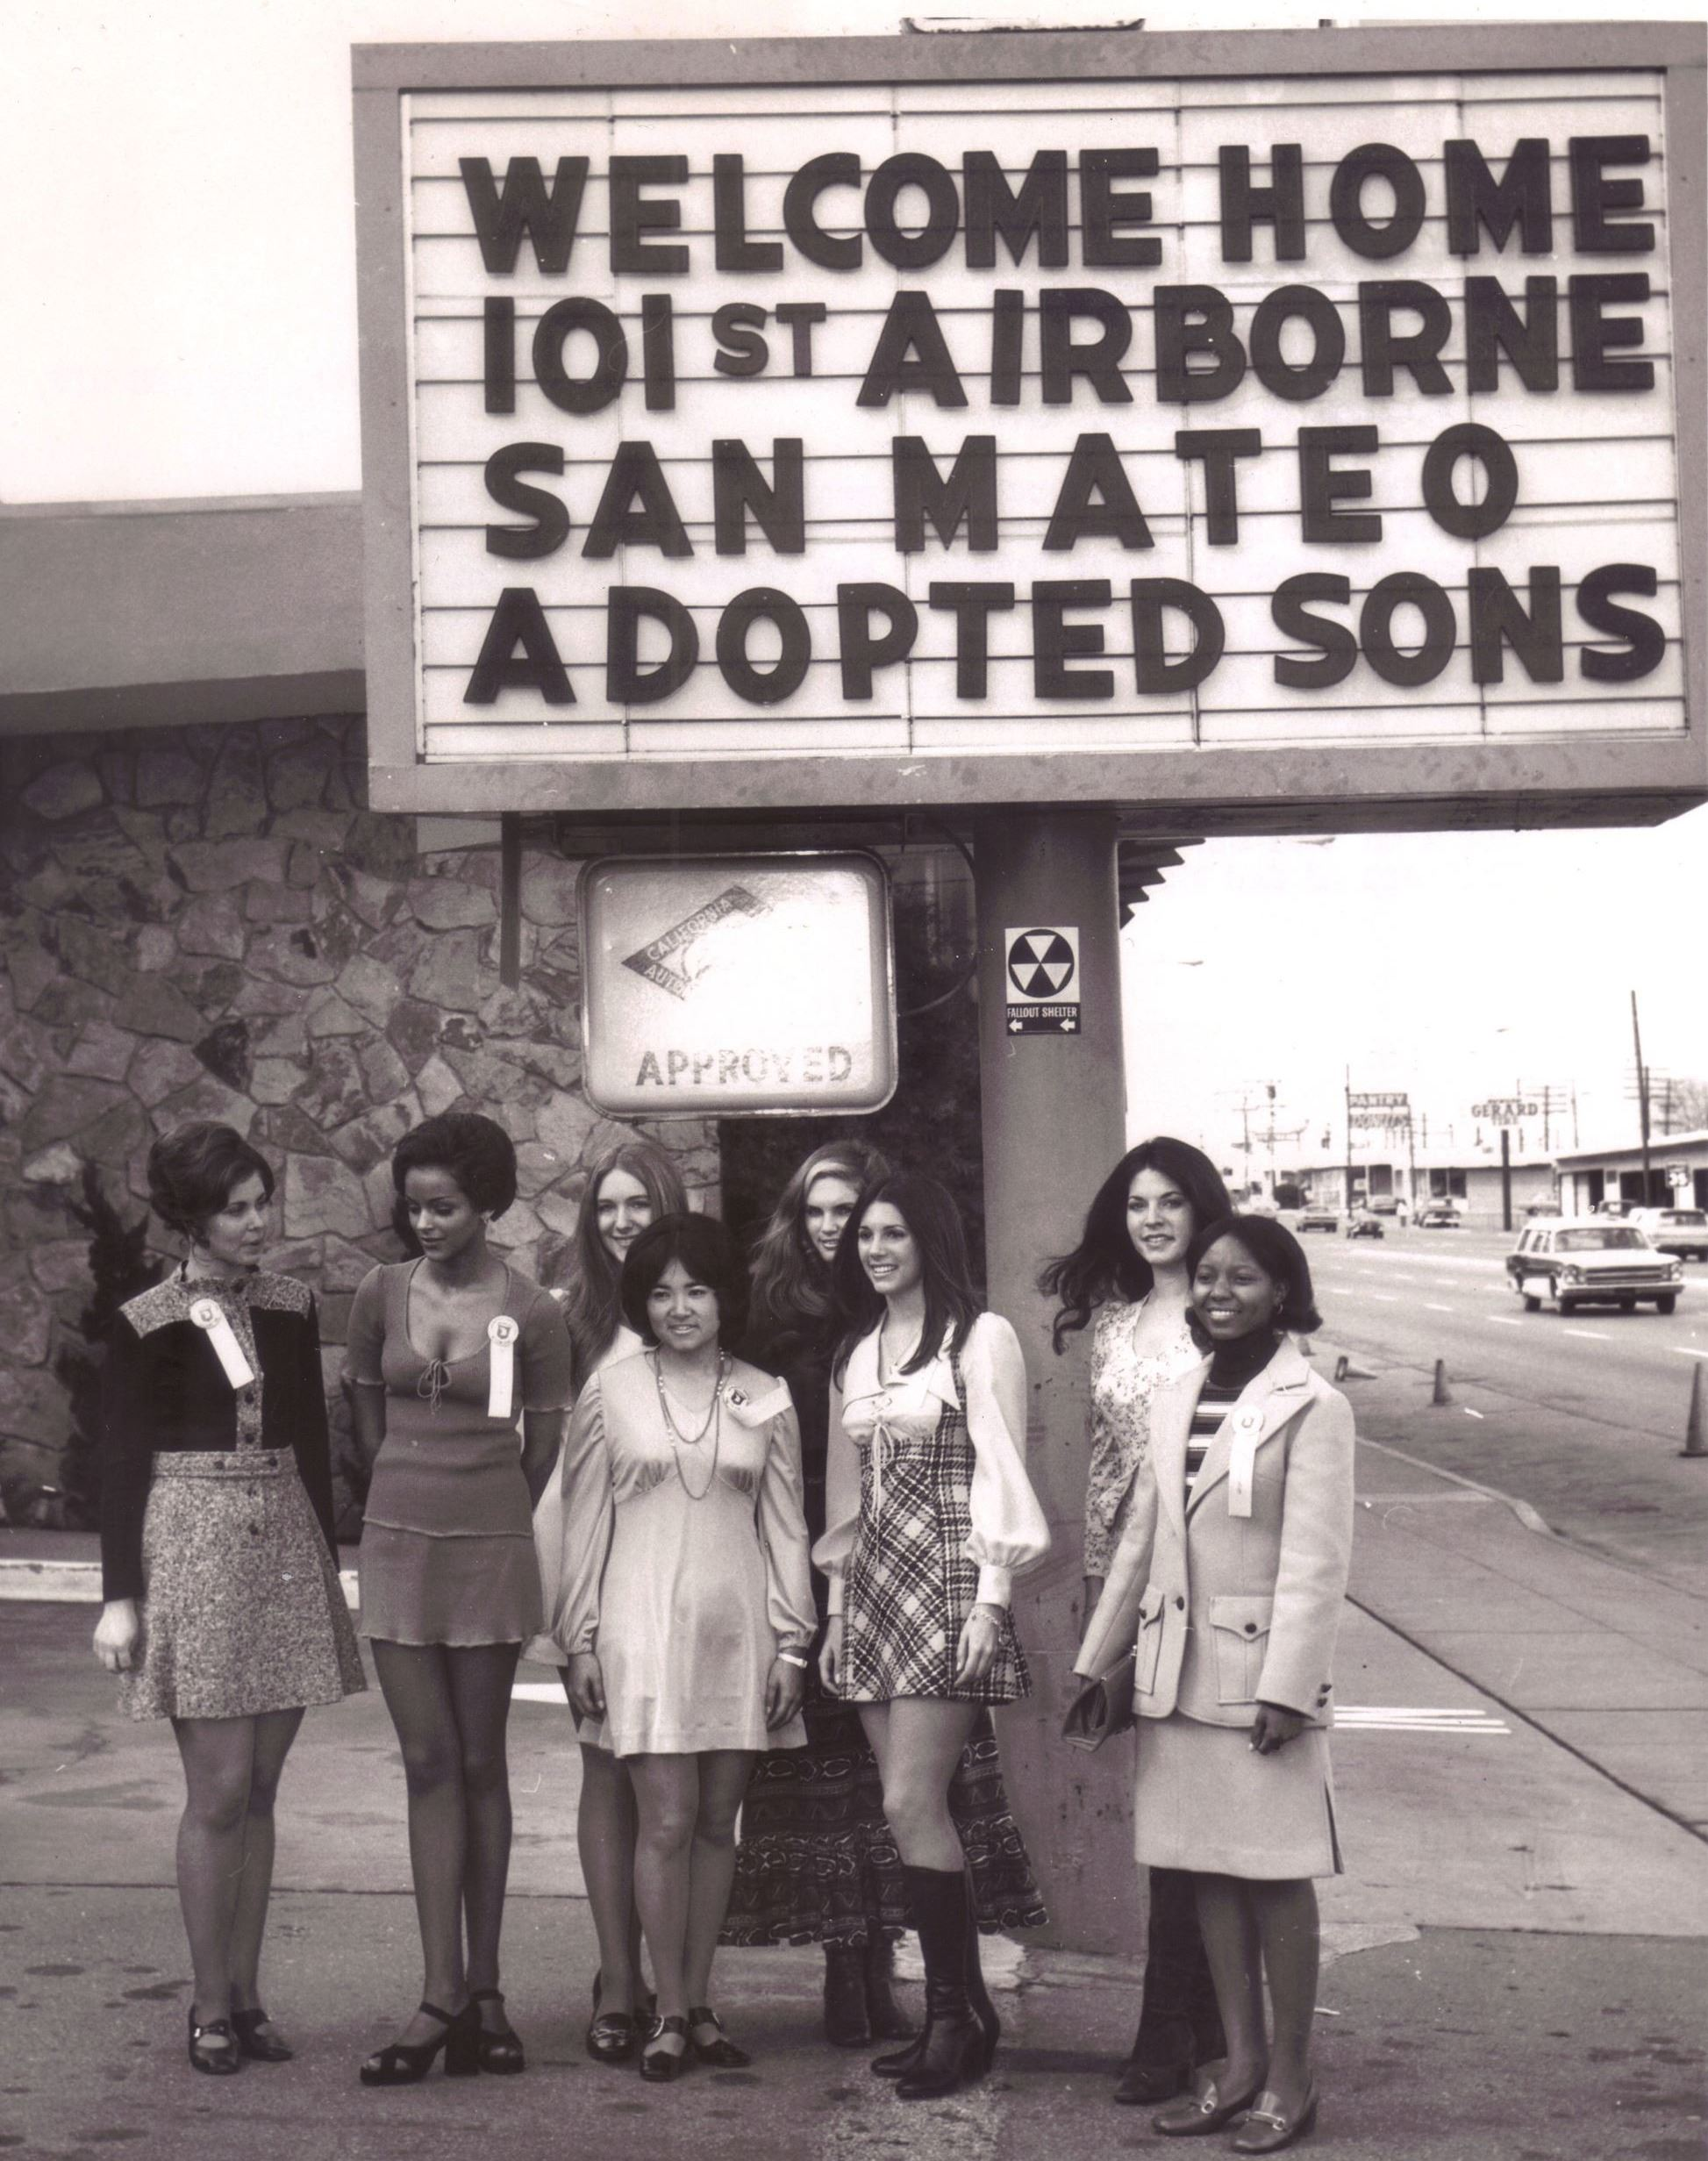 Homecoming for San Mateo Adopted Sons, Jan 22, 1972